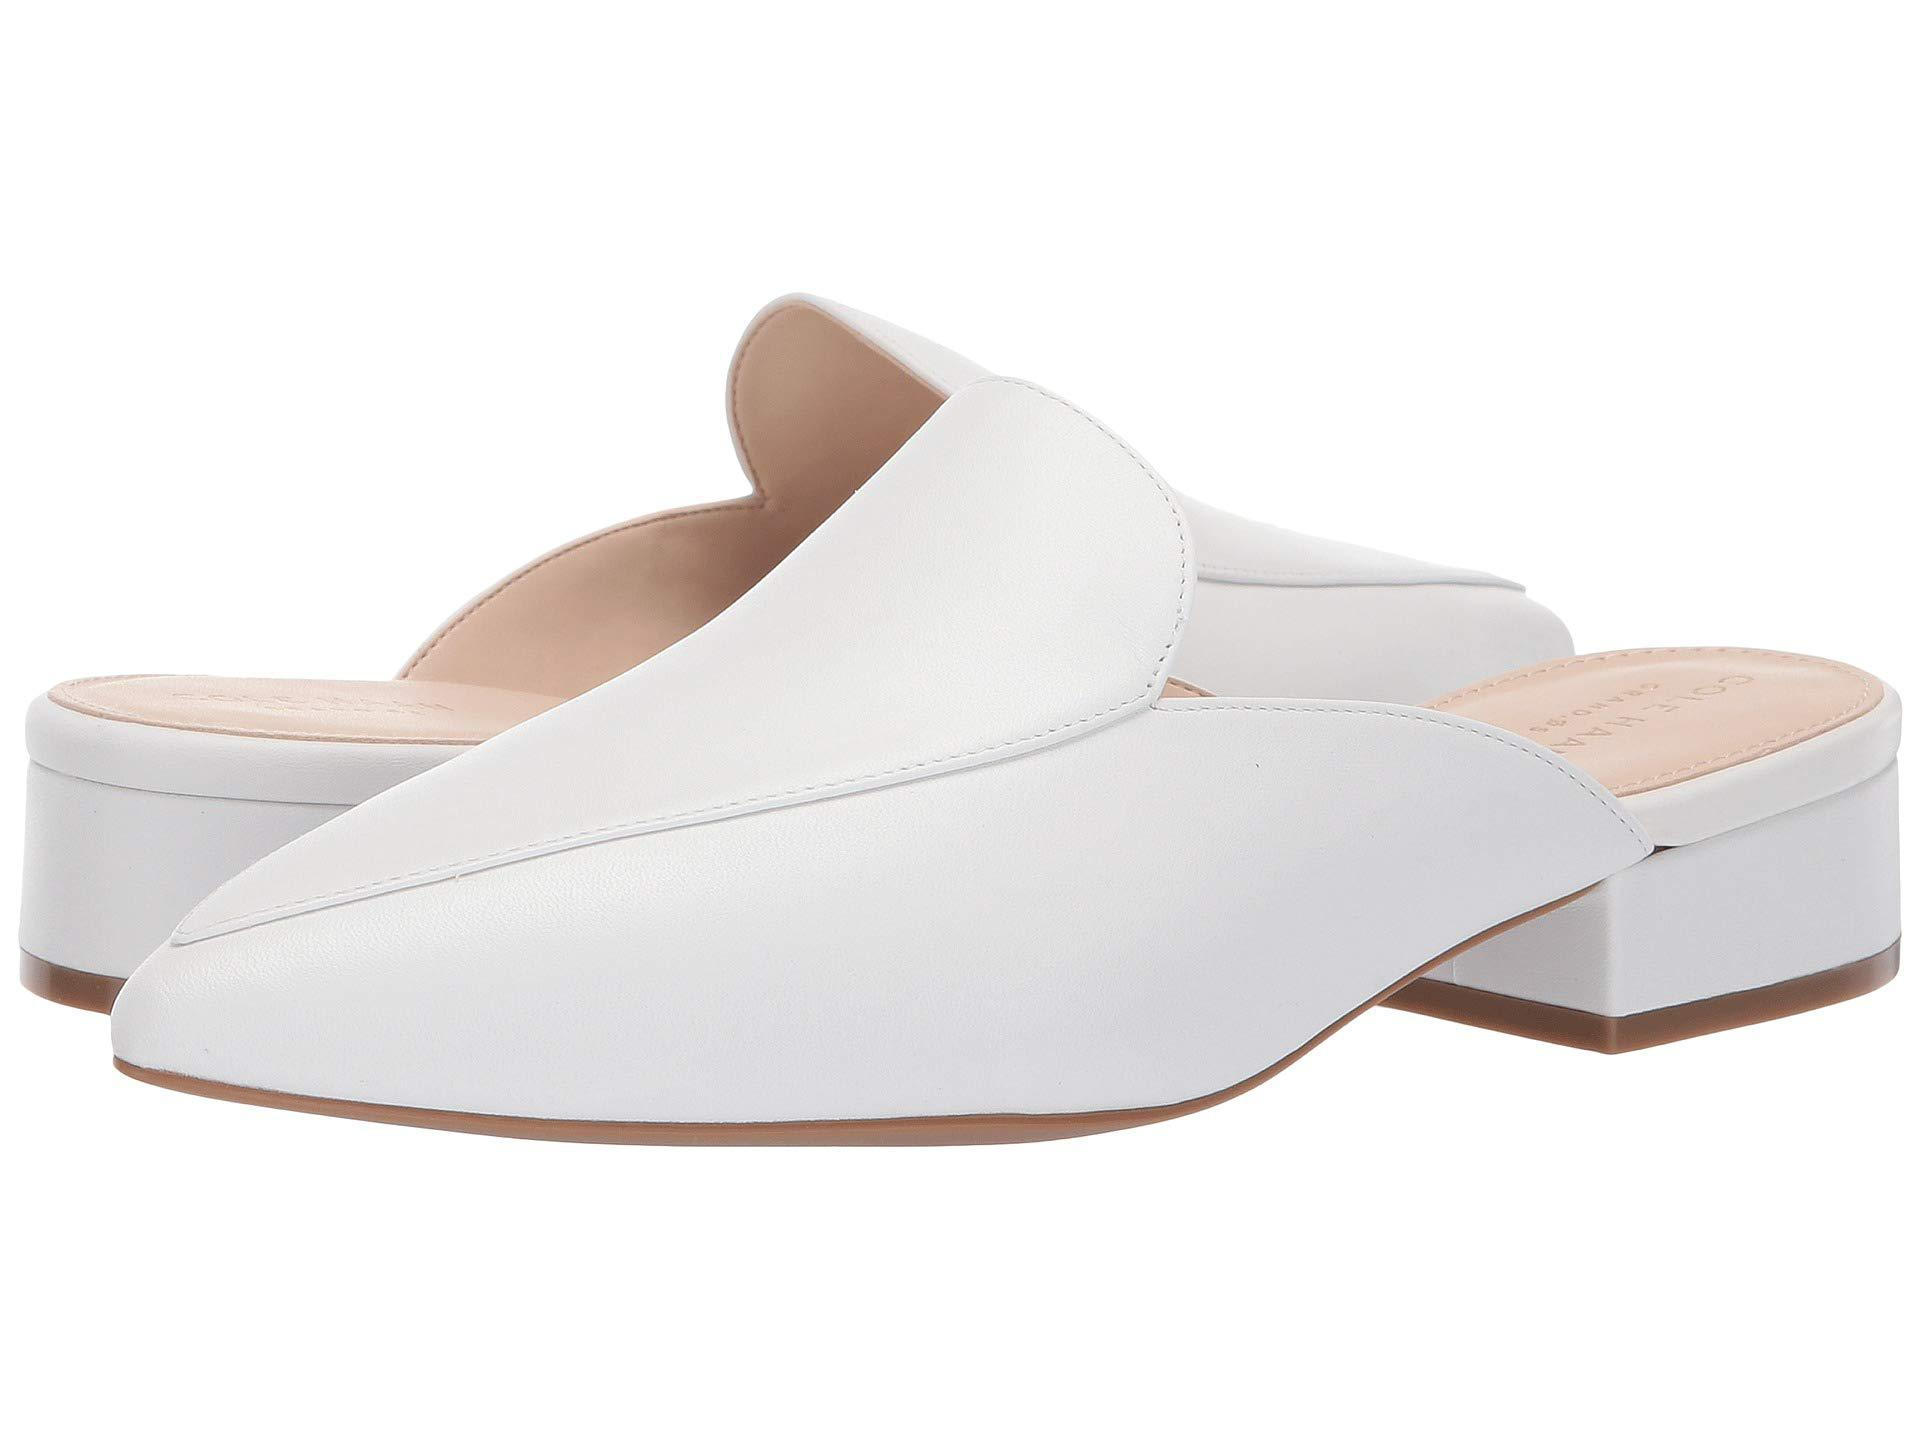 cba8a81bdfd Lyst - Cole Haan Piper Mule (black Leather) Women s Shoes in White ...